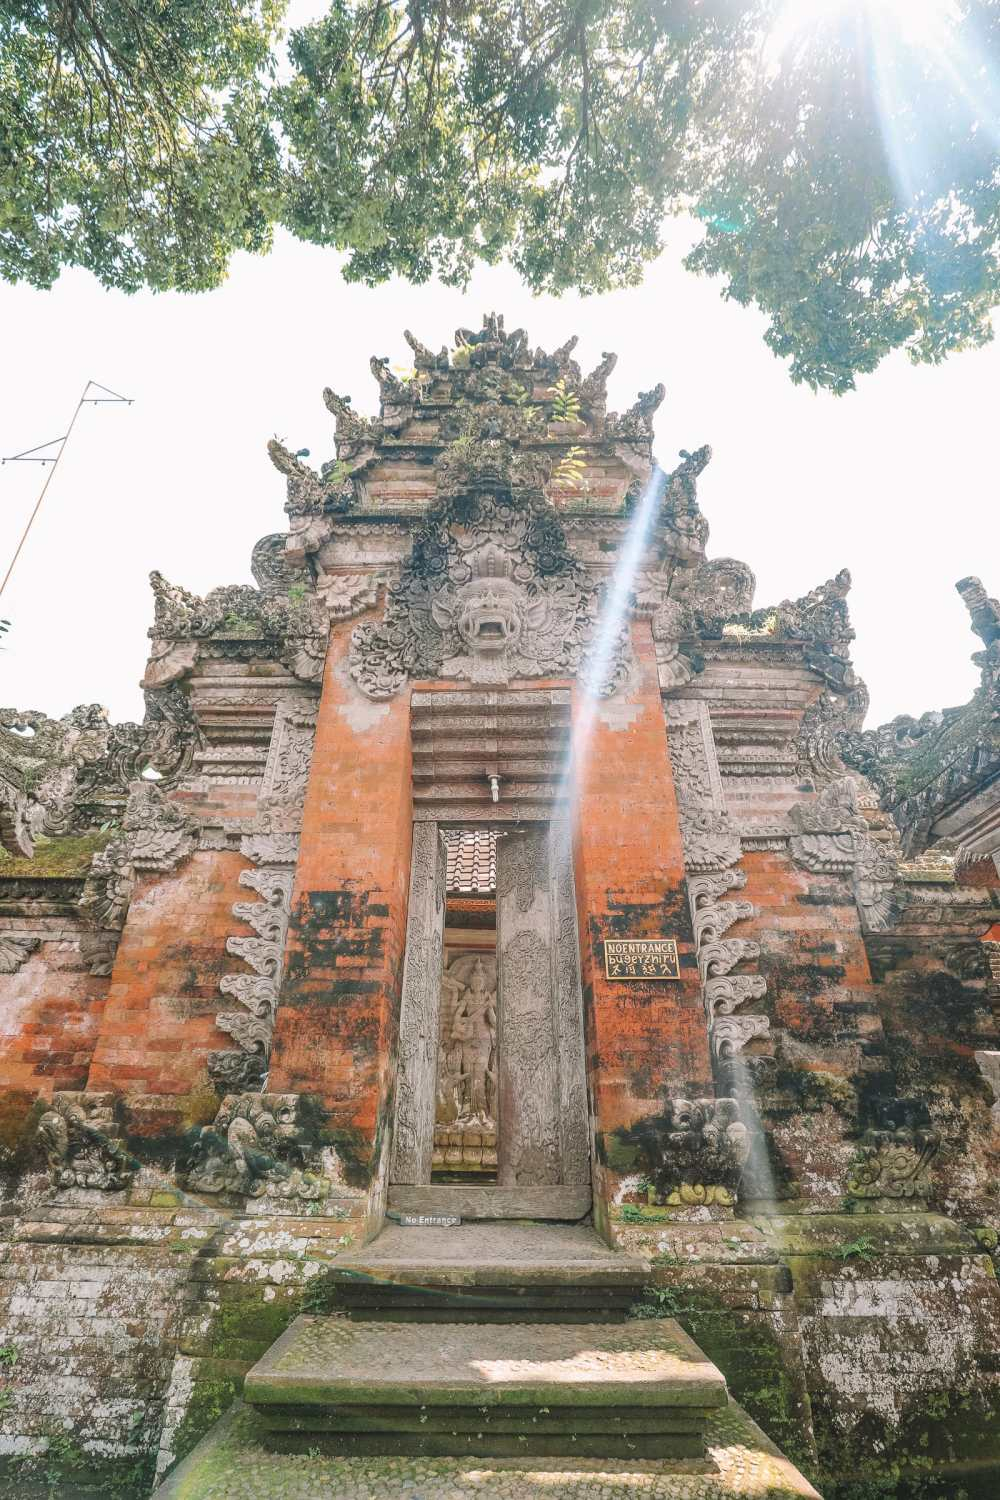 Bali Travel Diary - Ubud Palace, Uluwatu and Tanah Lot (6)